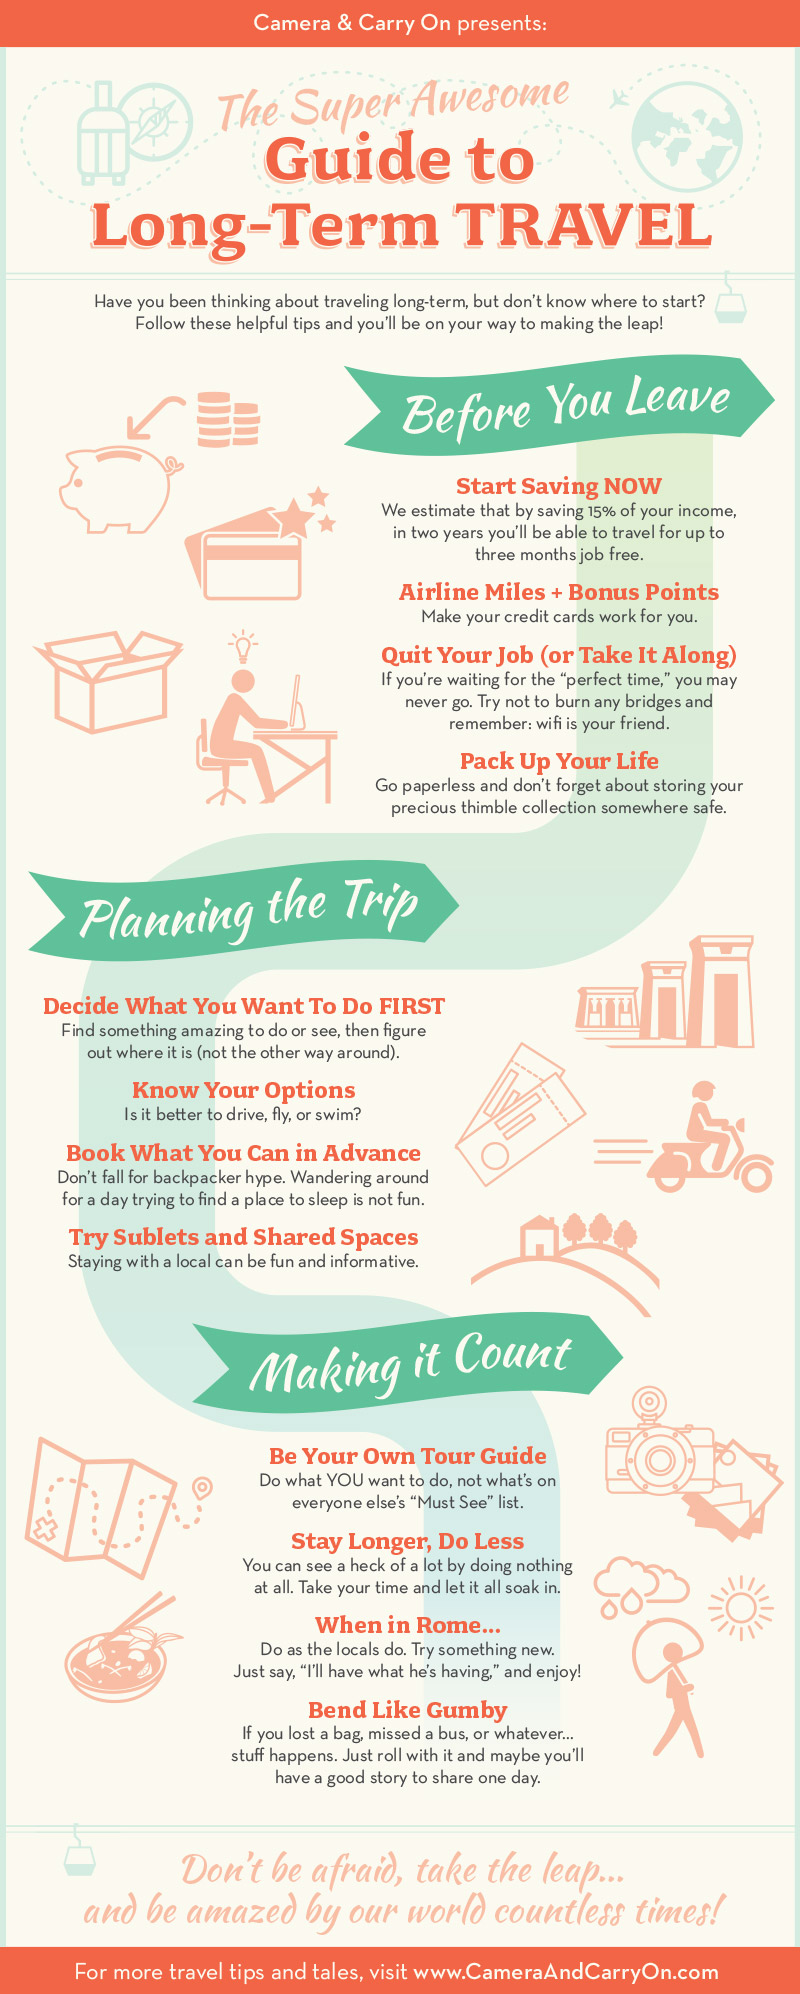 Super Awesome Guide to Long Term Travel — Our easy to follow infographic on how to make the dream of long term travel a reality, with tips for before, planning, and making it count! #infographic #travel #guide #longterm #tip #resource – small infographic | CameraAndCarryOn.com